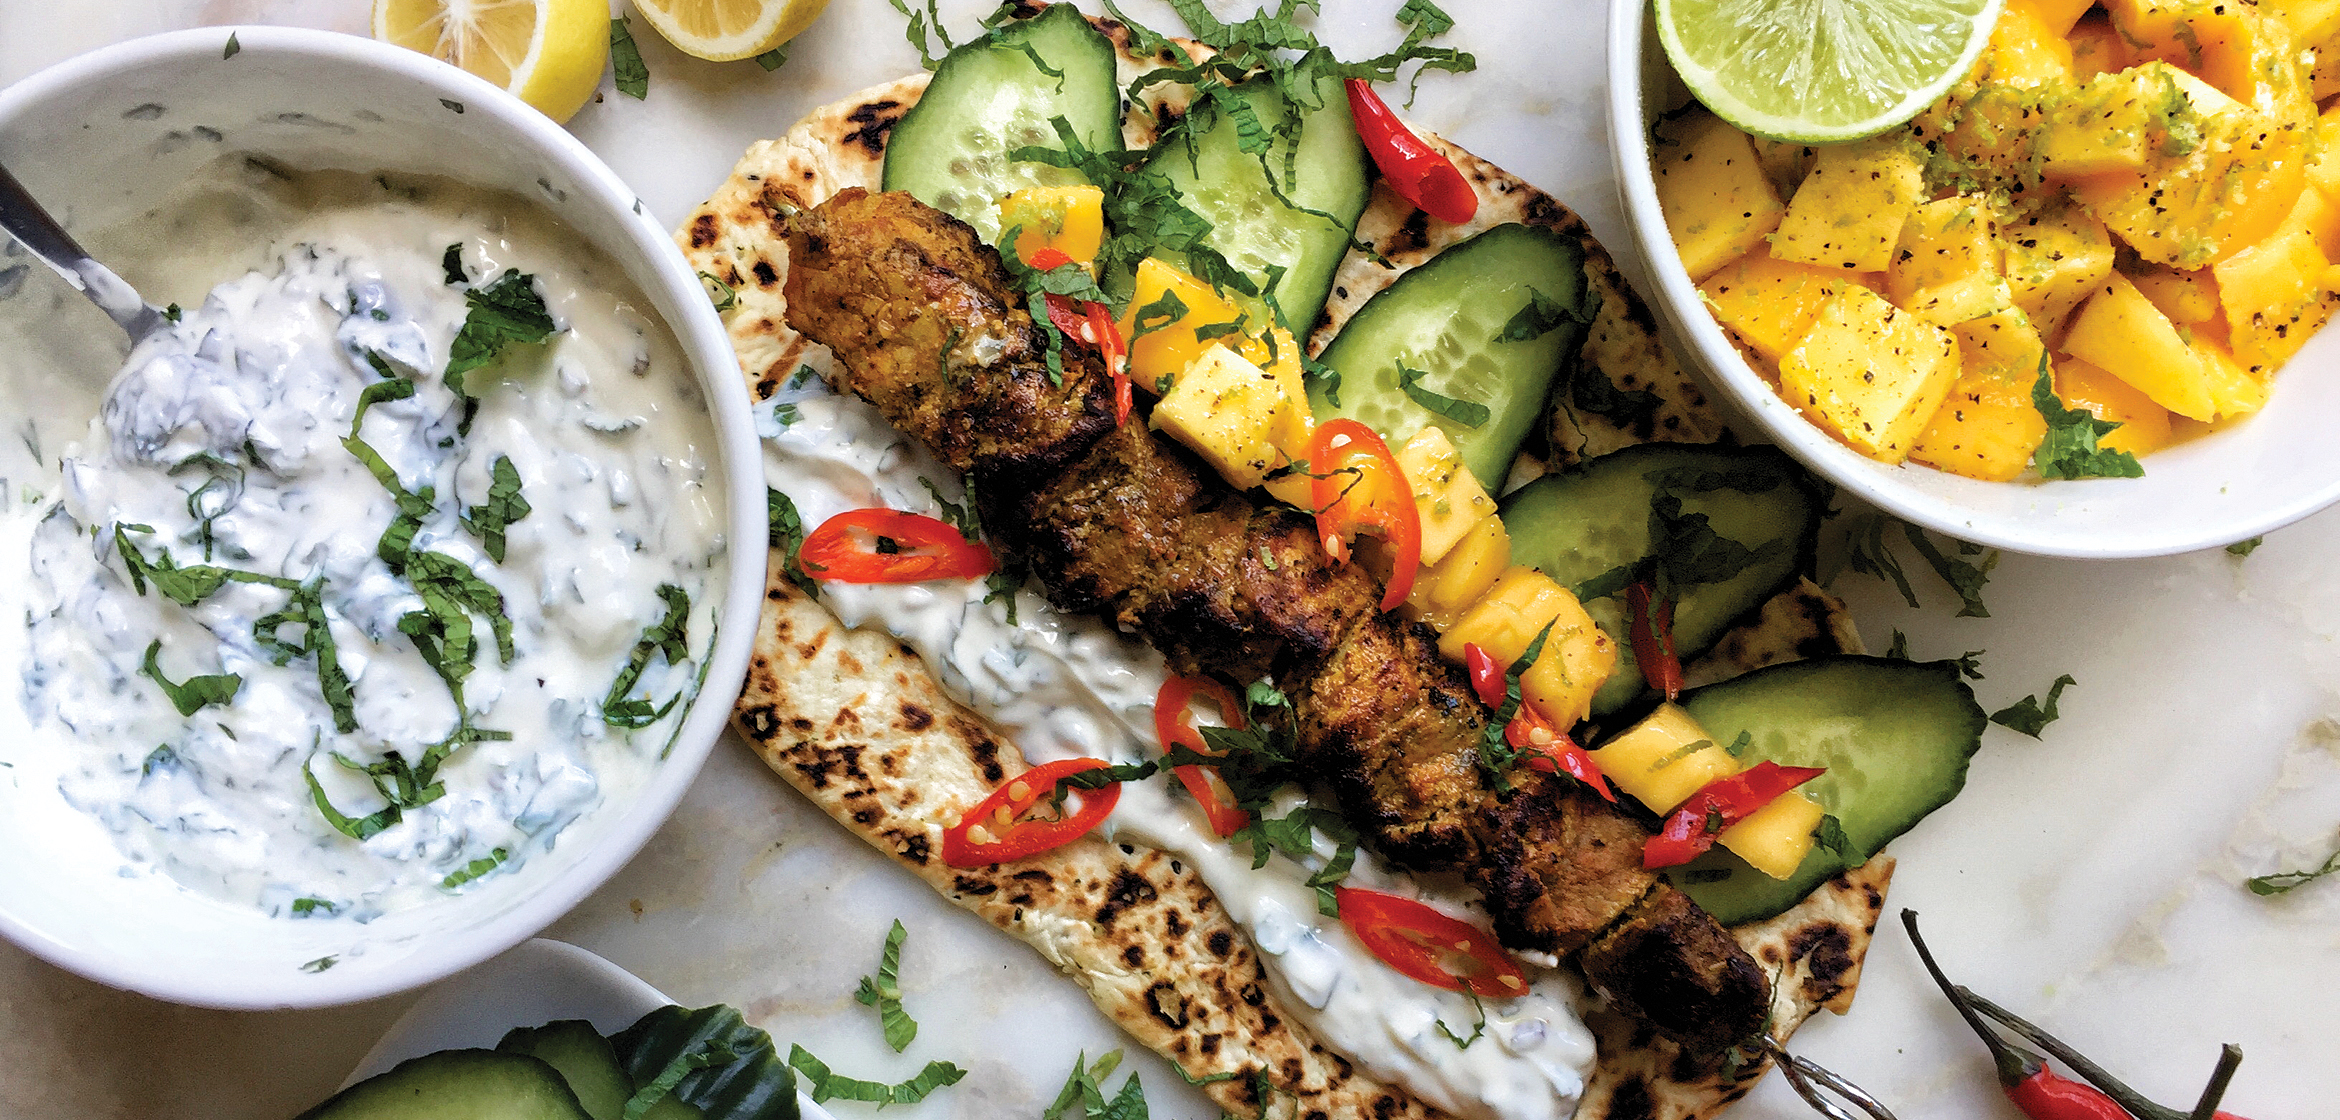 CURRIED PORK KEBABS